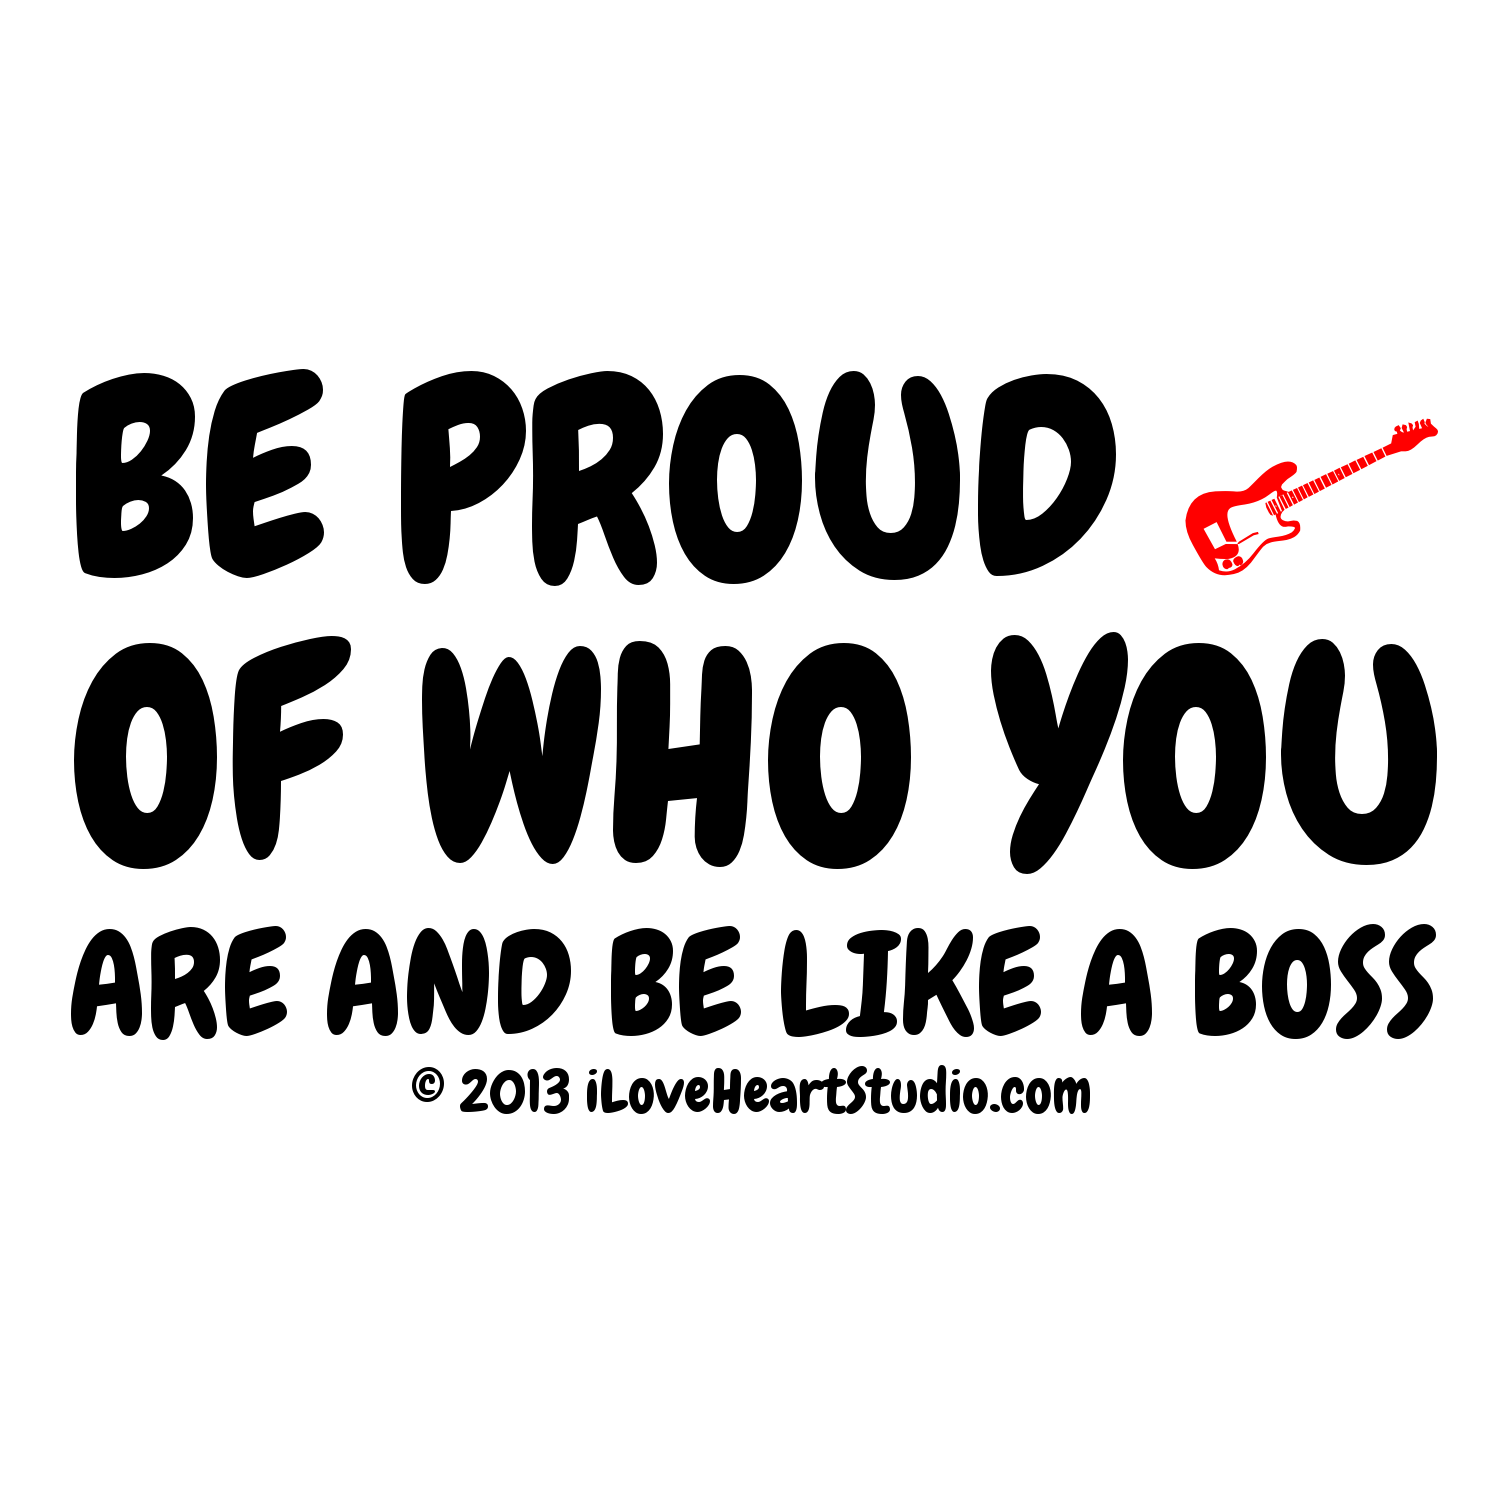 Be Proud Electric Guitar Of Who You Are And Be Like A Boss Design On T Shirt Poster Mug